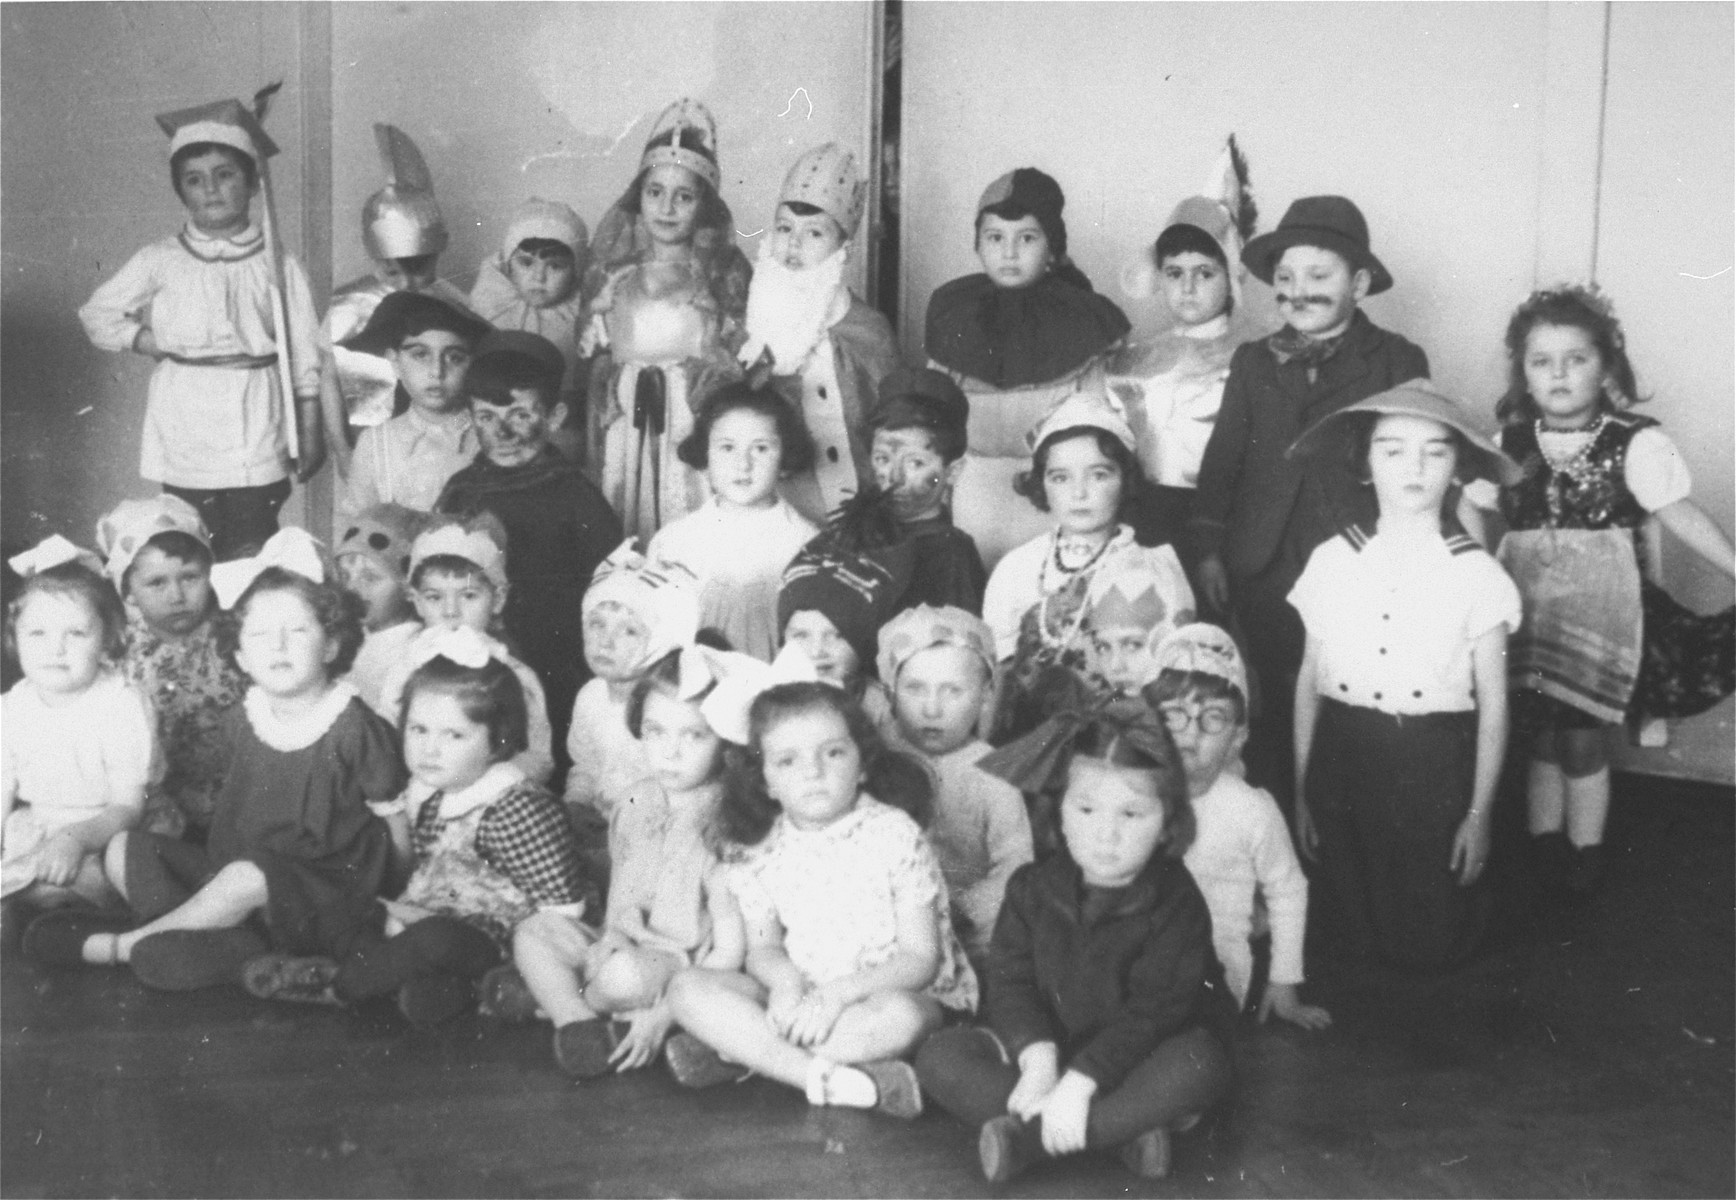 Group portrait of children dressed in costumes for Purim at a Jewish children's home in Krakow.  Among those pictured is Jehudit Joffe (now Monica Goldner).  Jehudit, who was hidden during the war, was brought to a children's home in Krakow after the liberation.  She lived in the home for a year and a half before she was adopted.